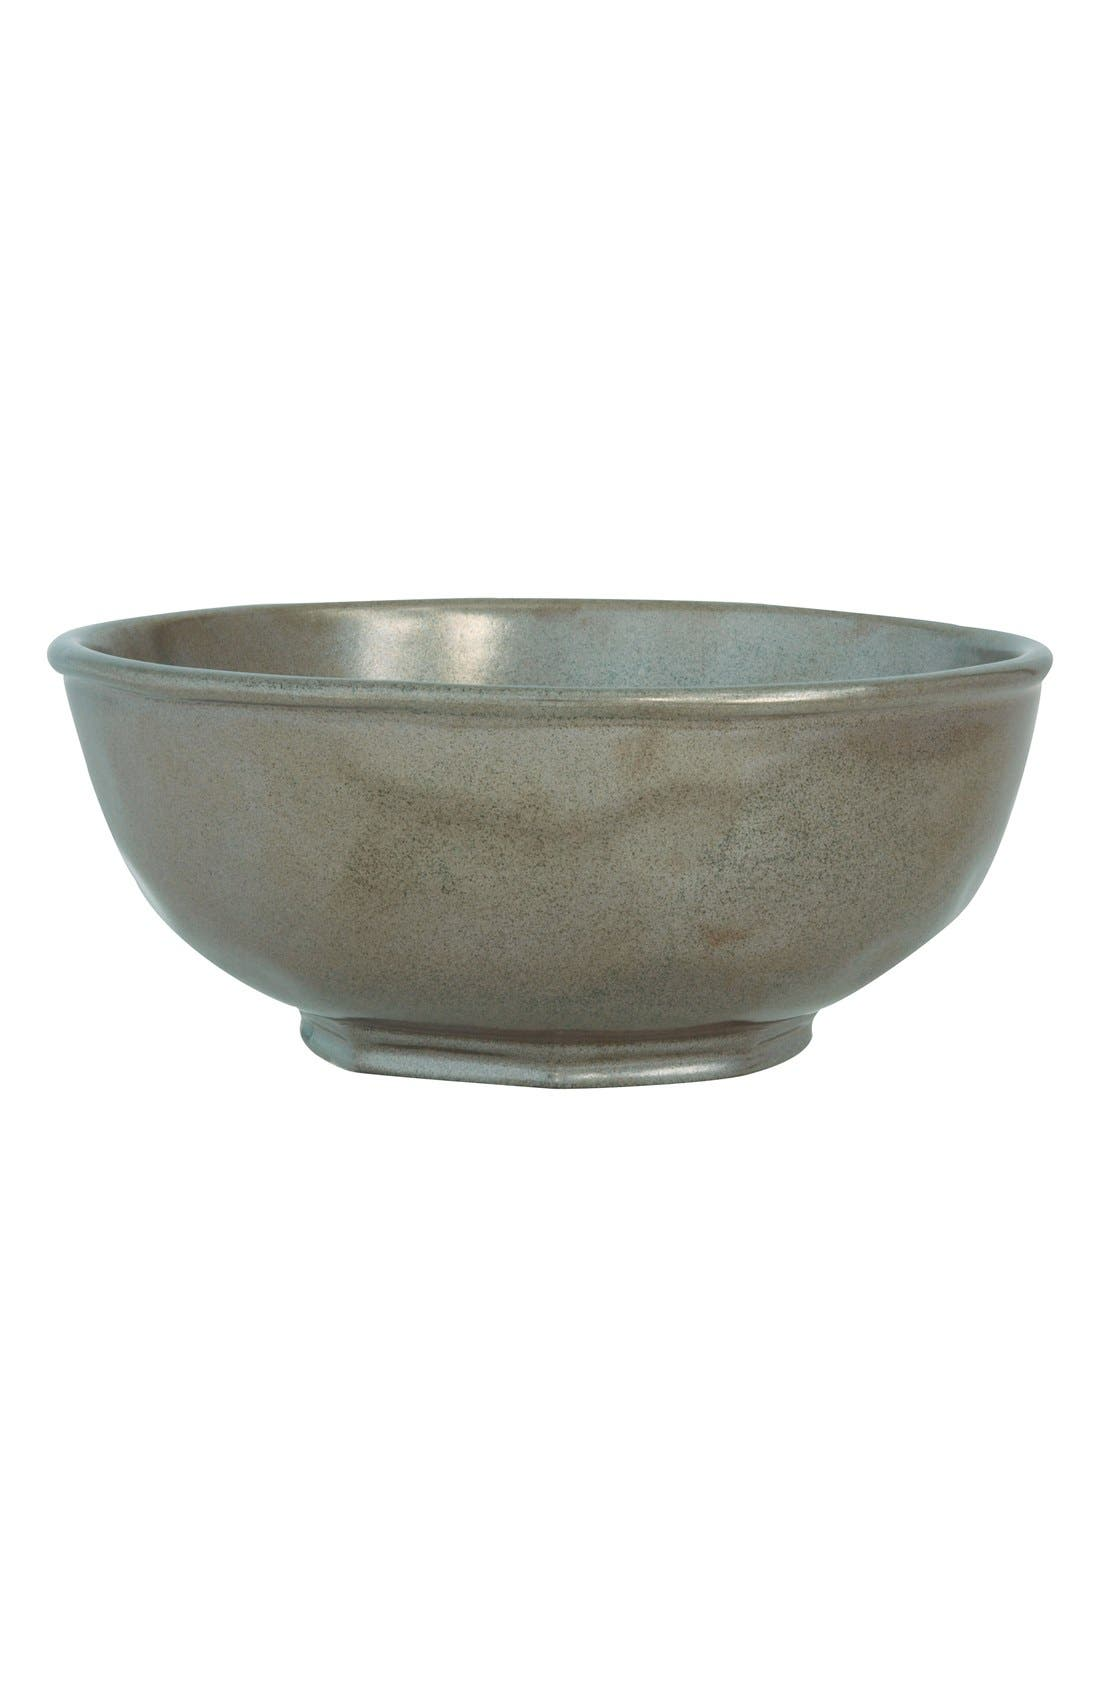 Alternate Image 1 Selected - Juliska 'Pewter' Ceramic Bowl